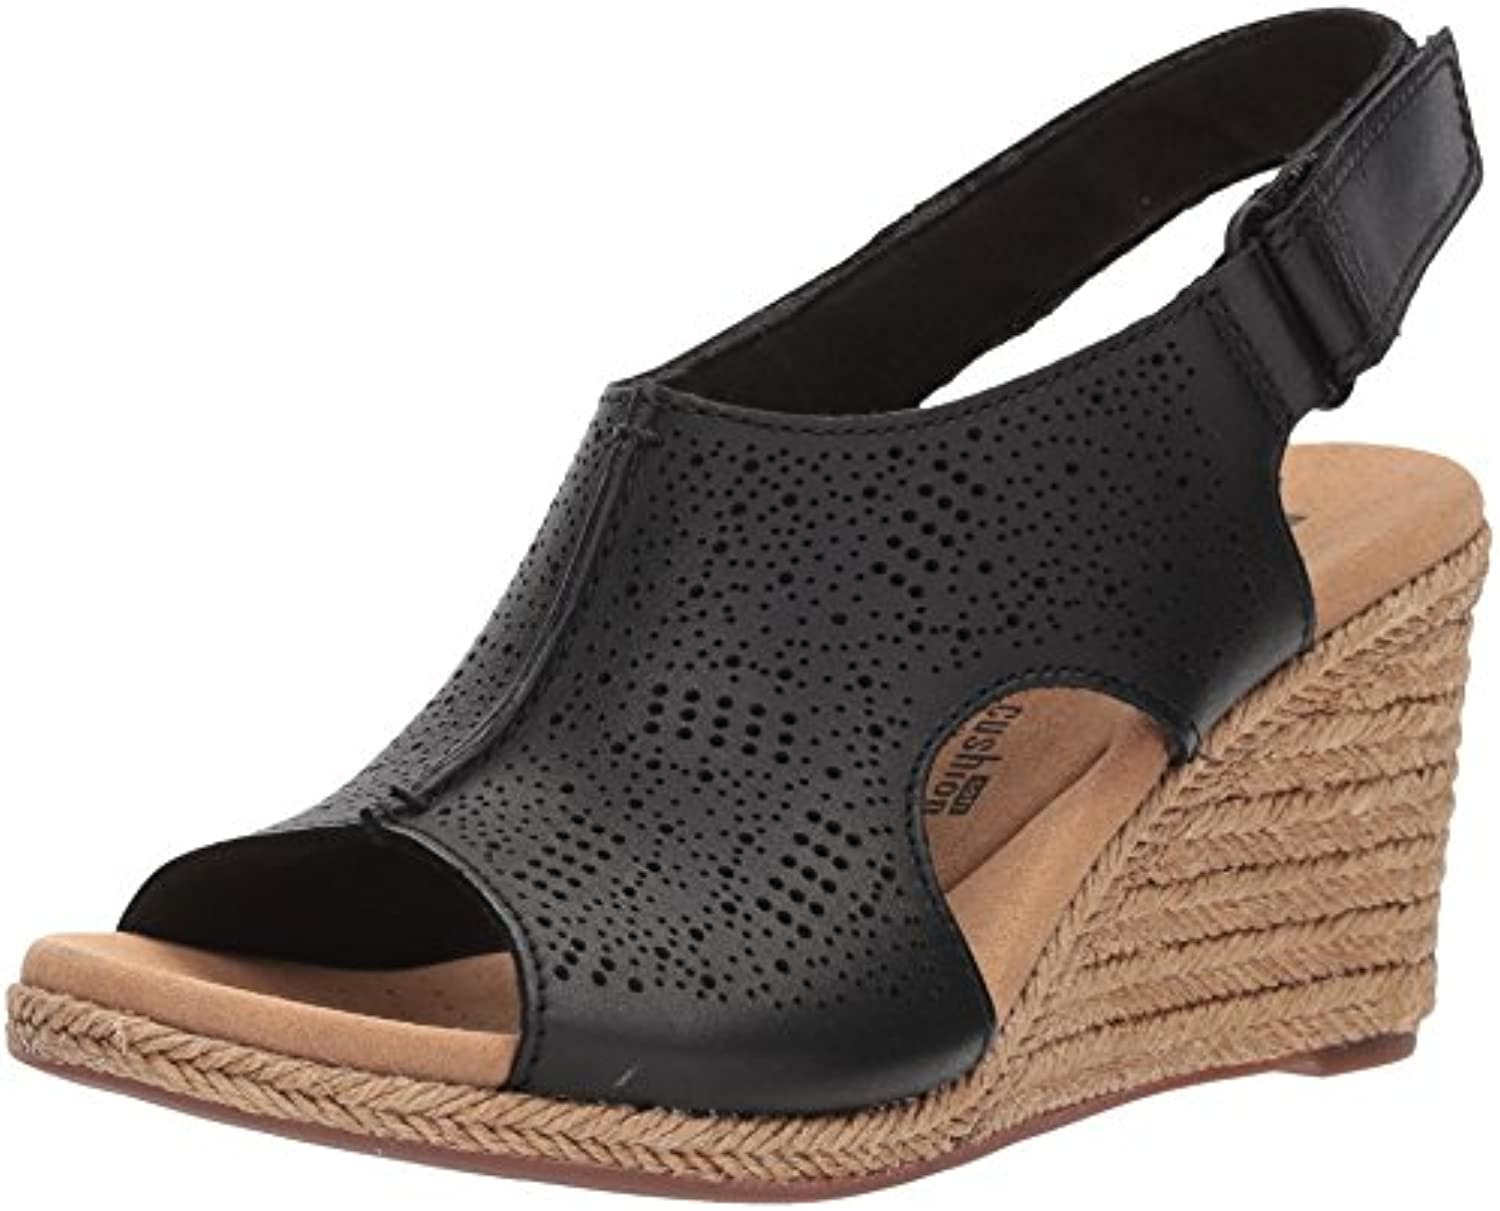 Clarks Wouomo Lafley rosan Platform, nero Leather, 12 Medium US | Design ricco